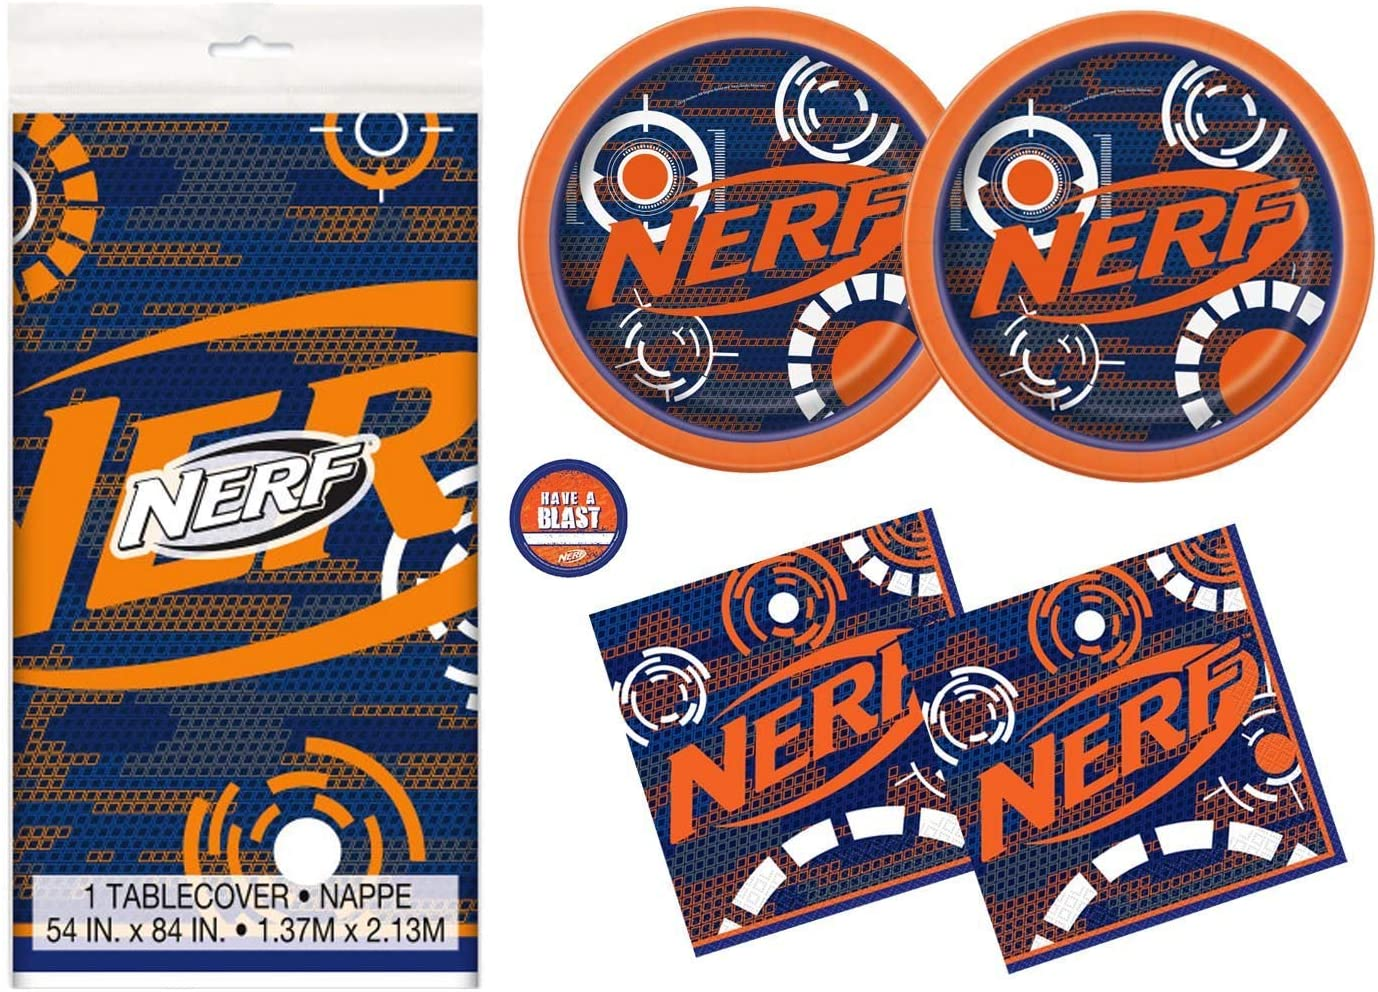 Nerf Theme Party Supplies Pack - Serves 16 - Tablecover, Plates, Napkins and Sticker: Amazon.es: Juguetes y juegos